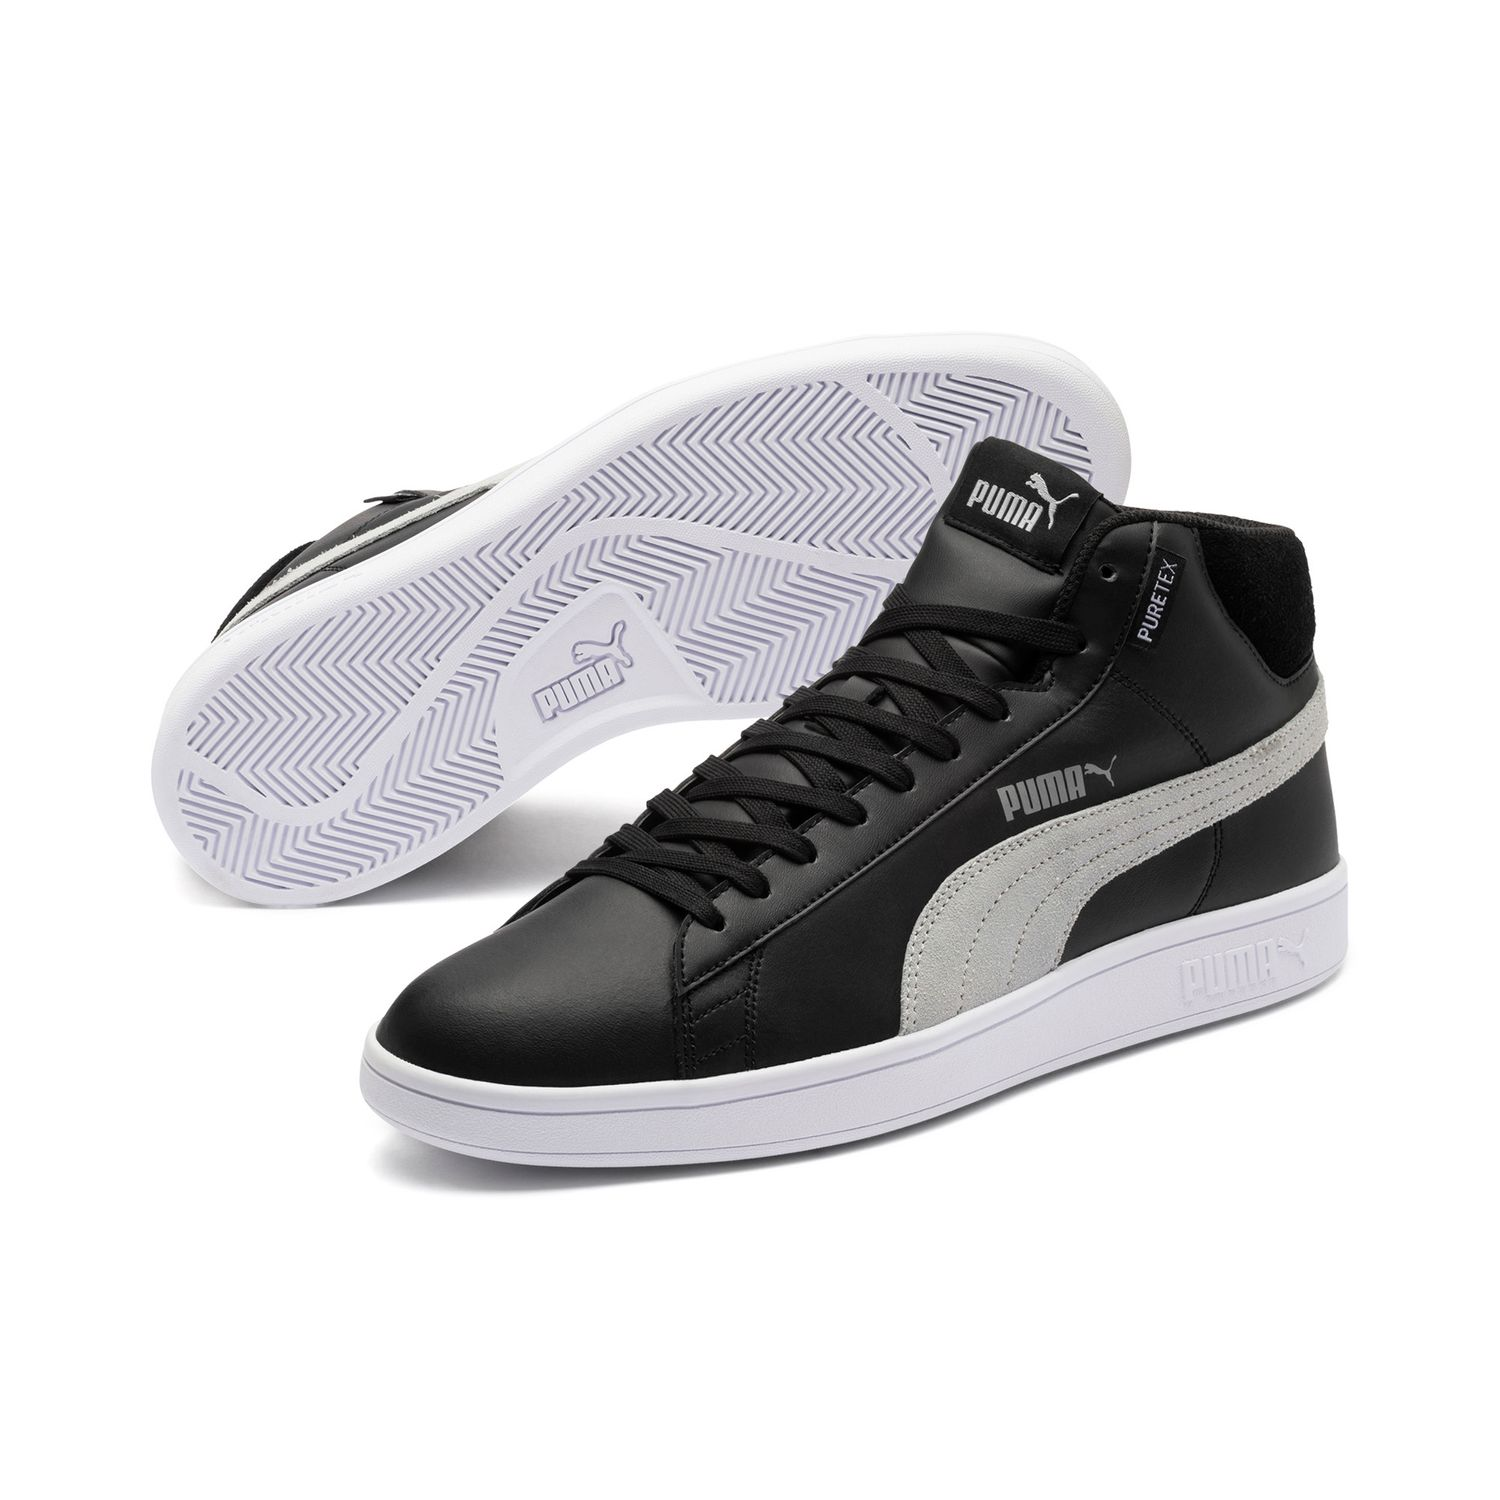 puma sneaker high tops